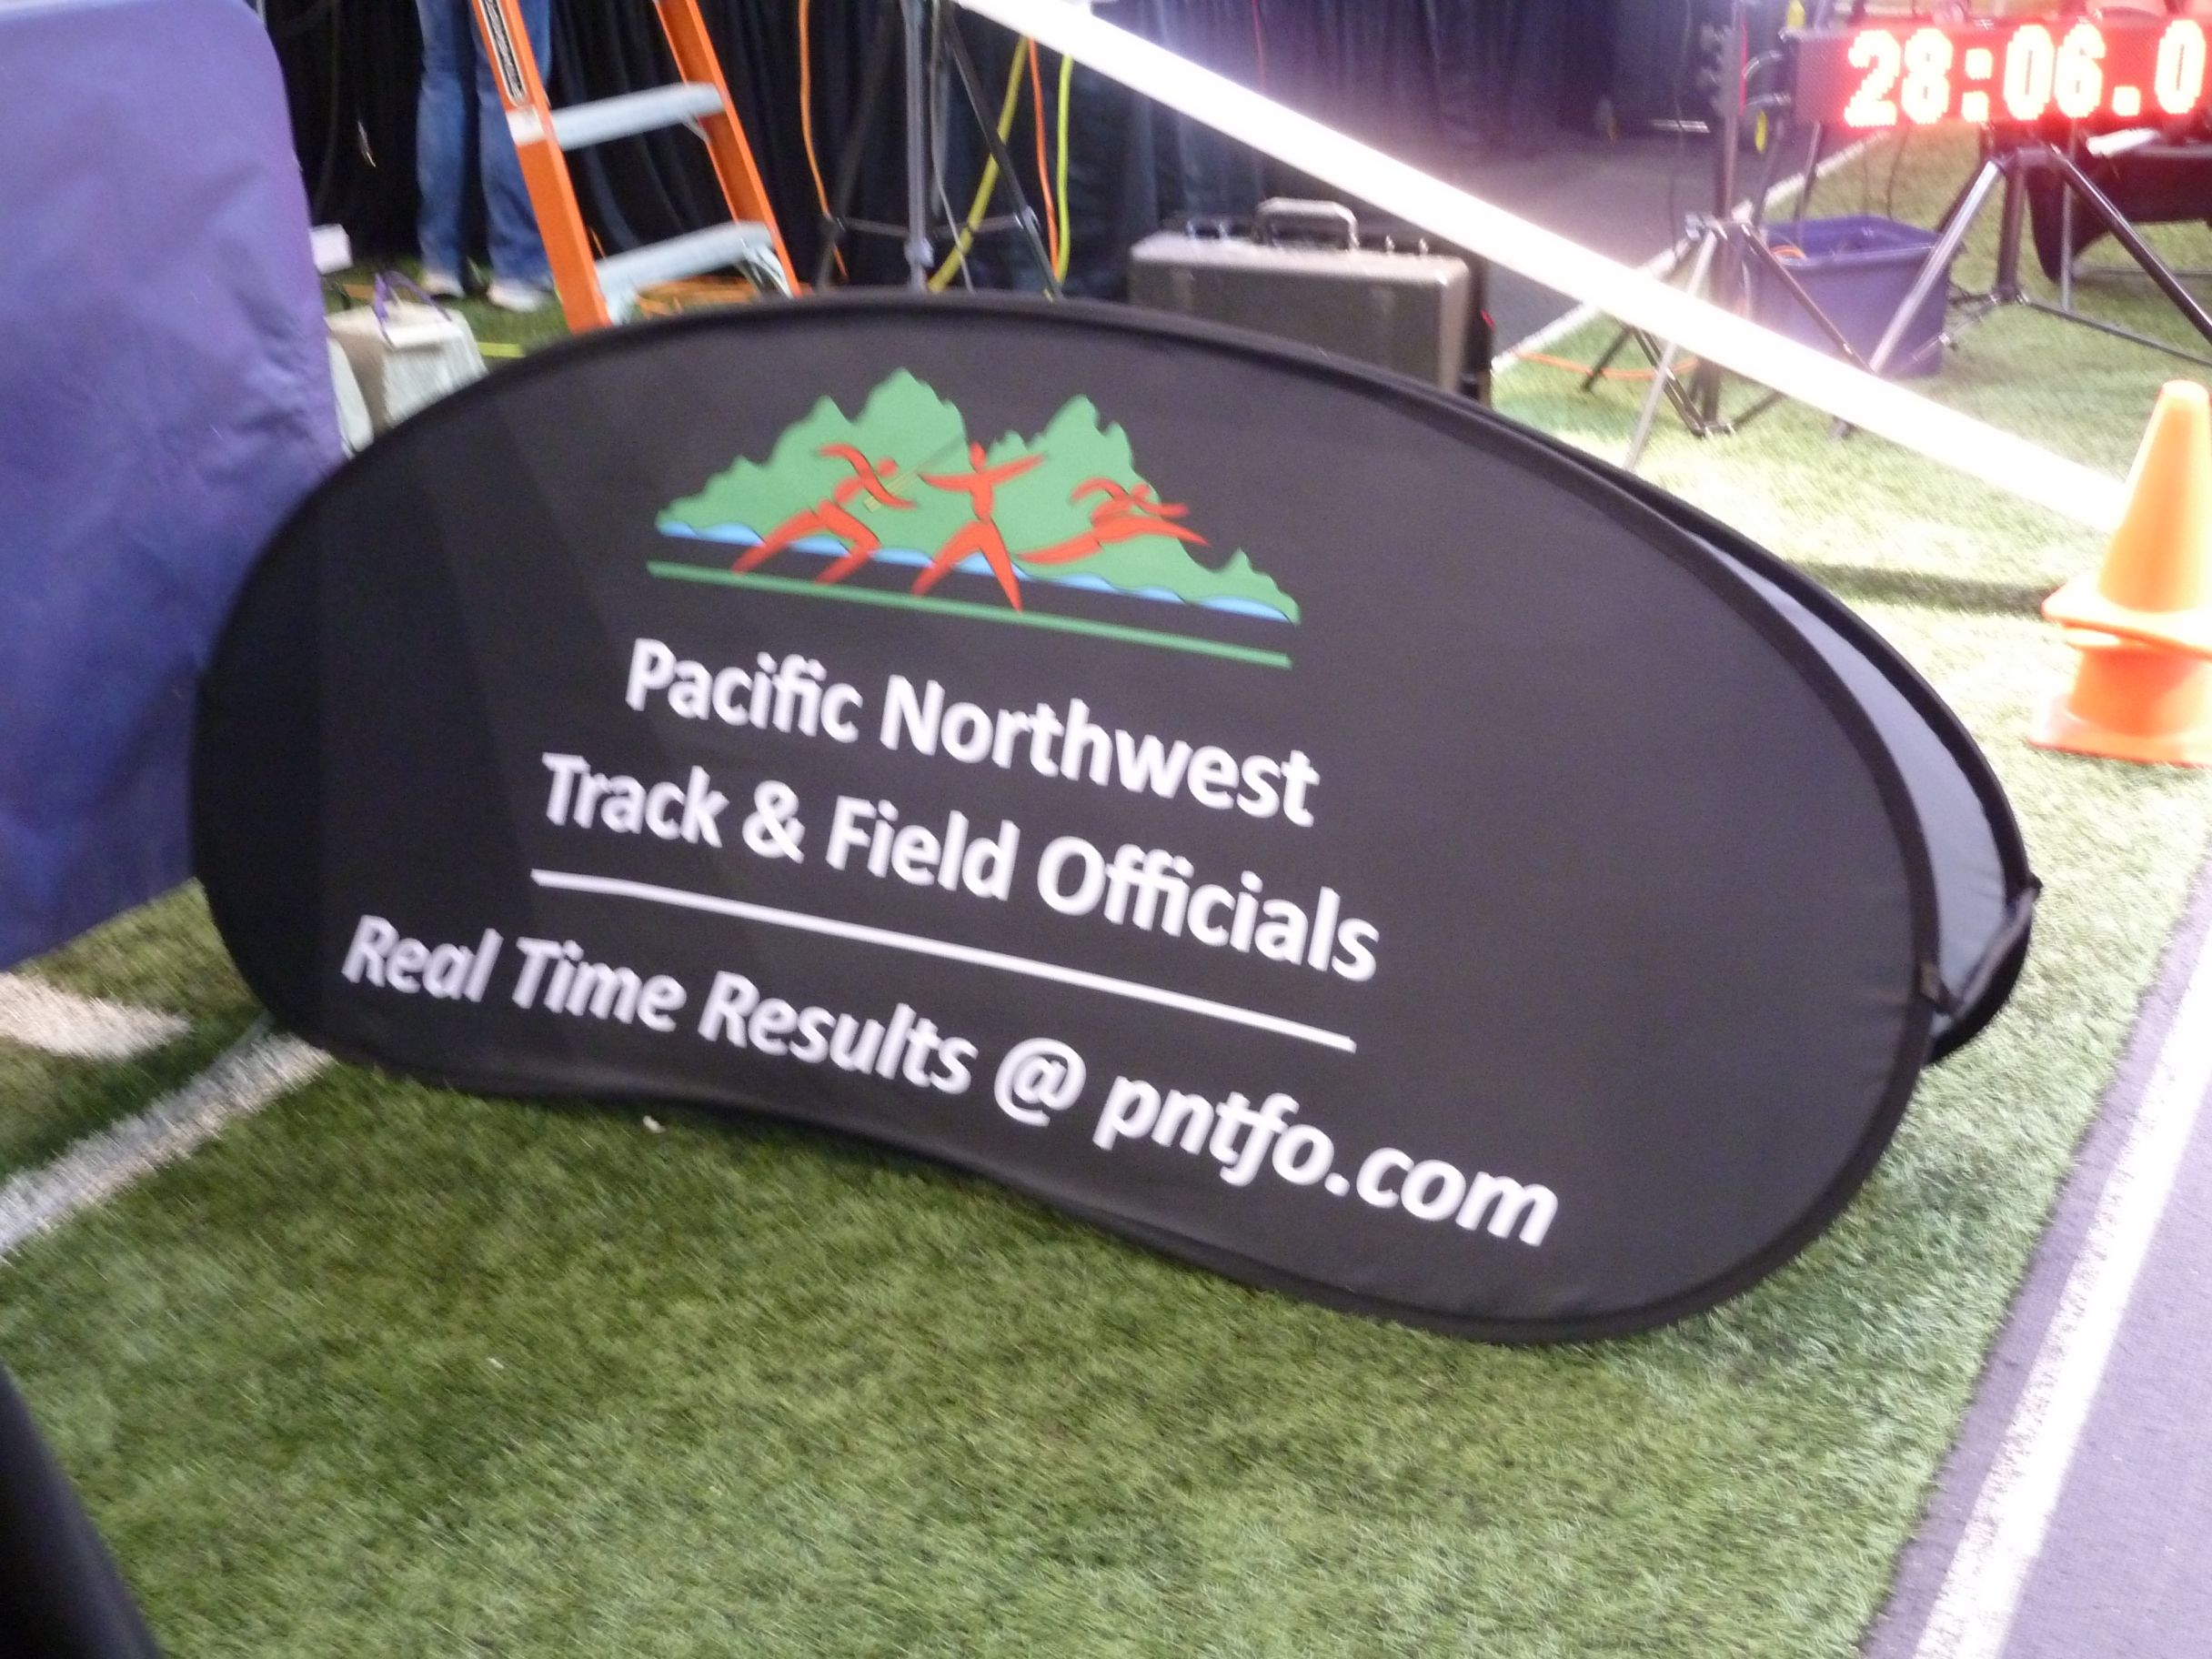 track field officiating equipment